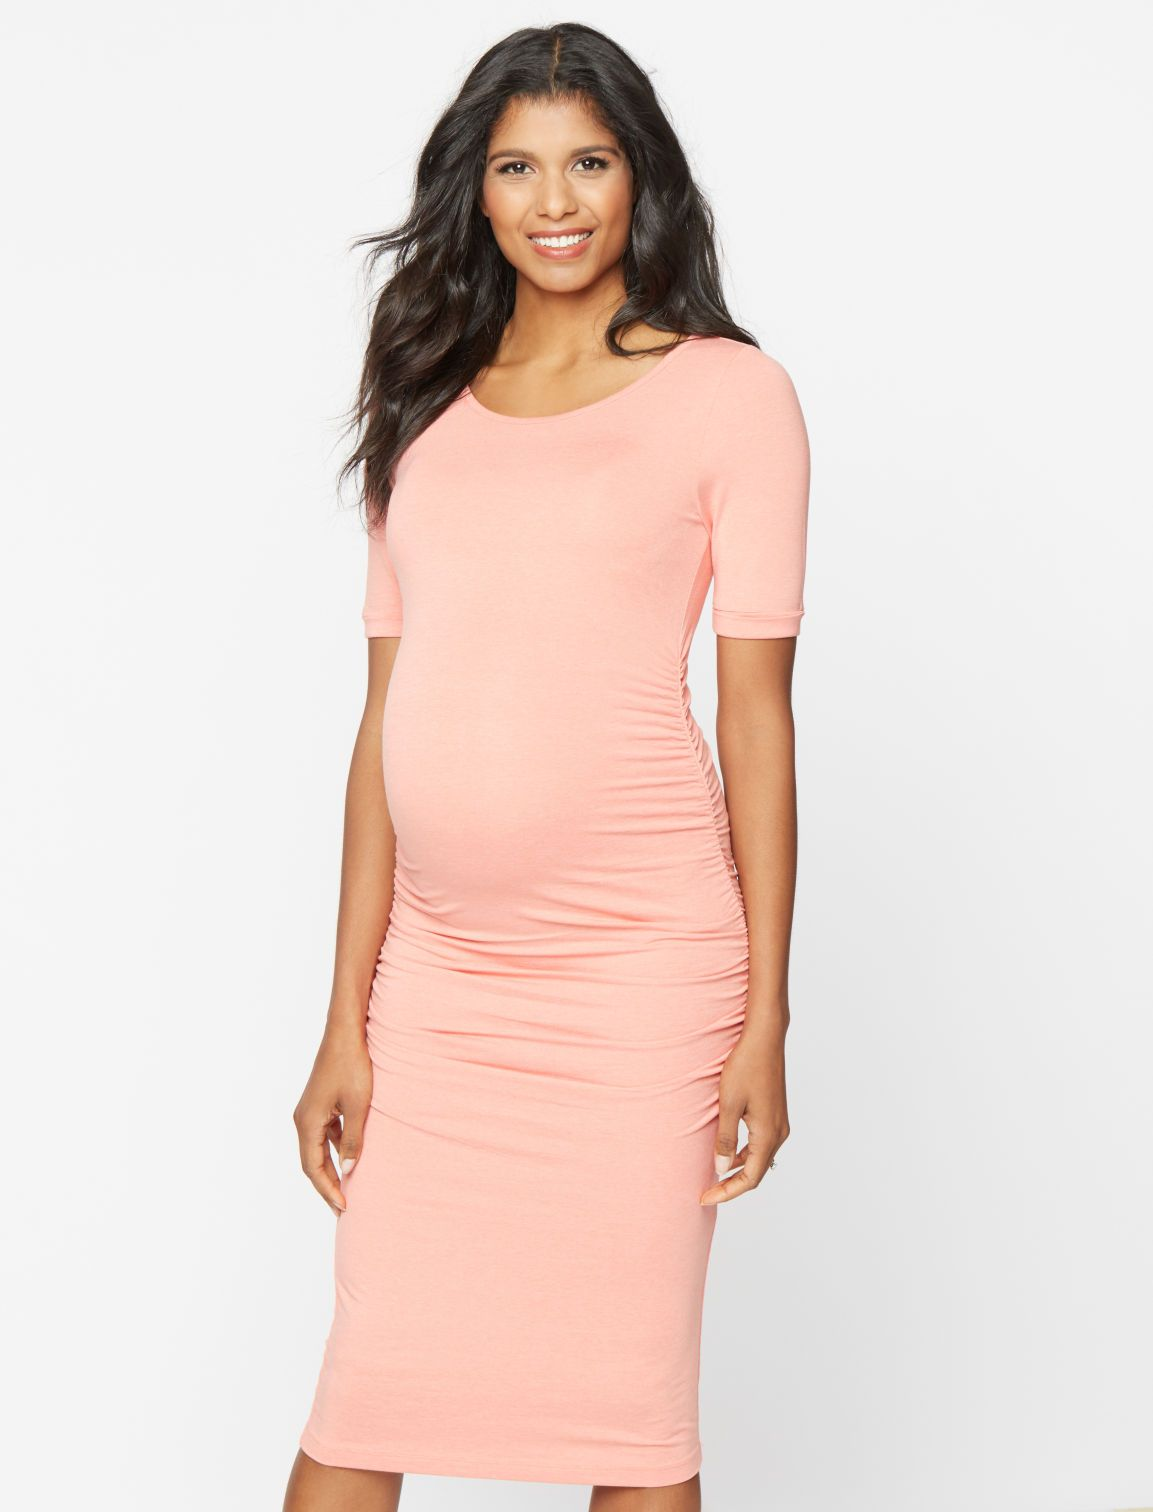 b7baac65ffc61 A Pea in the Pod Isabella Oliver Ruched T Shirt Maternity Dress ...